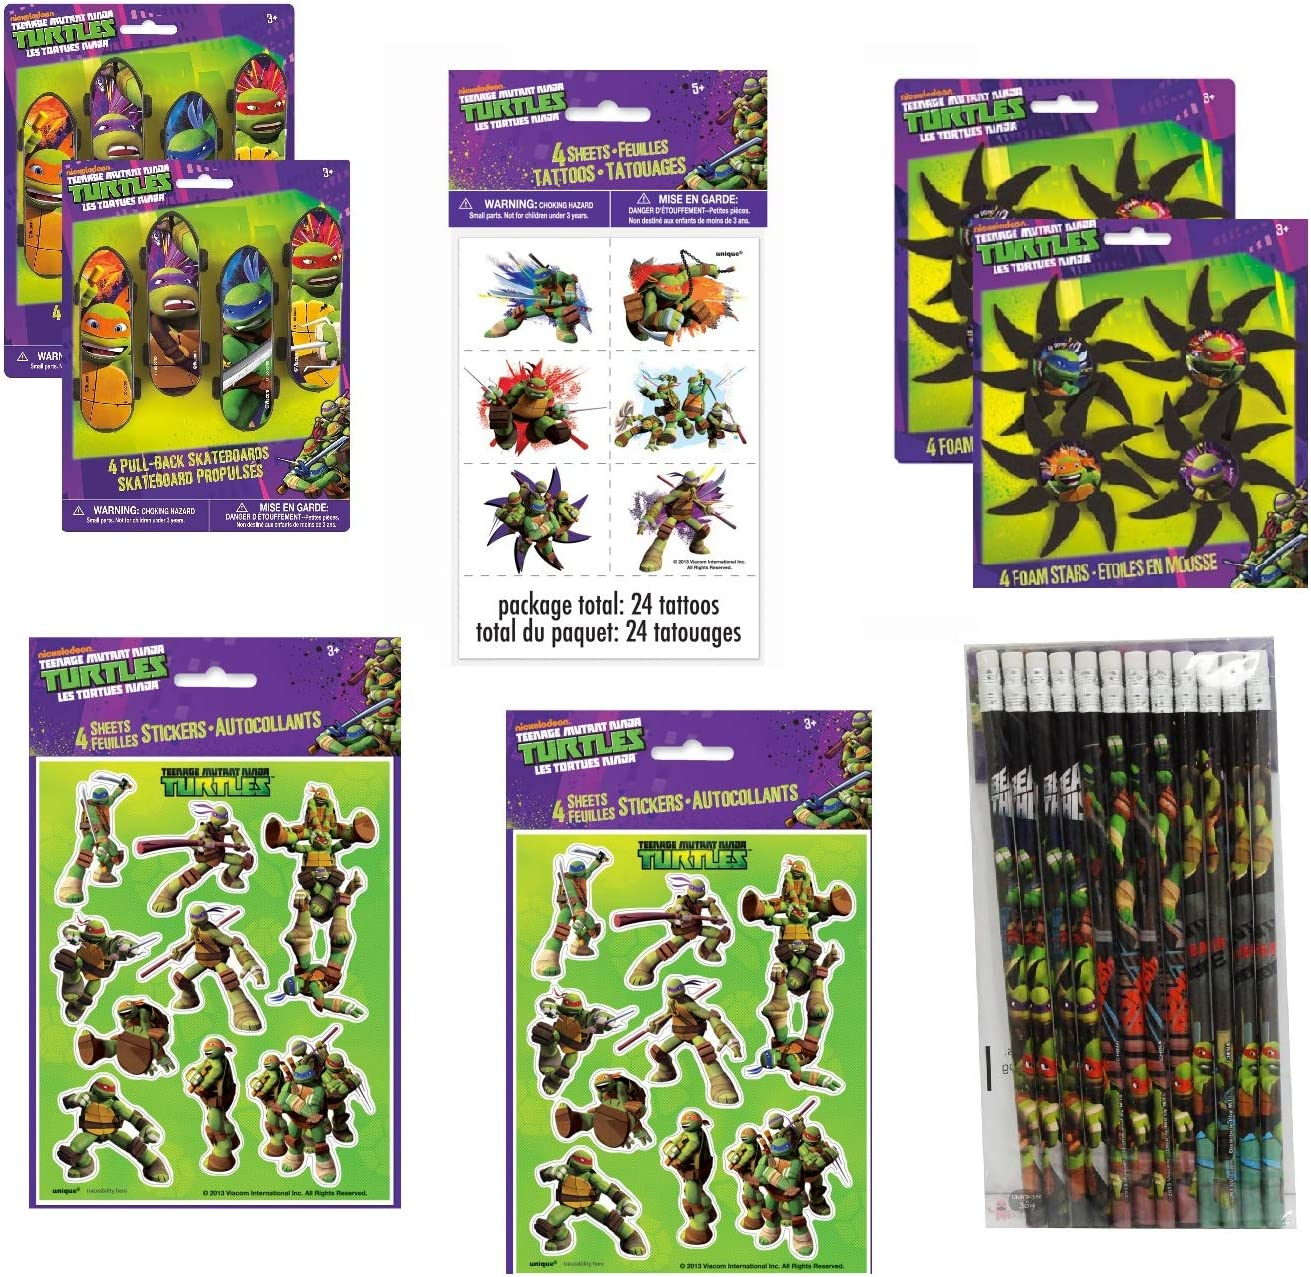 Teenage Mutant Ninja Turtles Birthday Party Favor Bundle Set includes Skateboard, Foam Stars, Pencils, Tattoos, Stickers